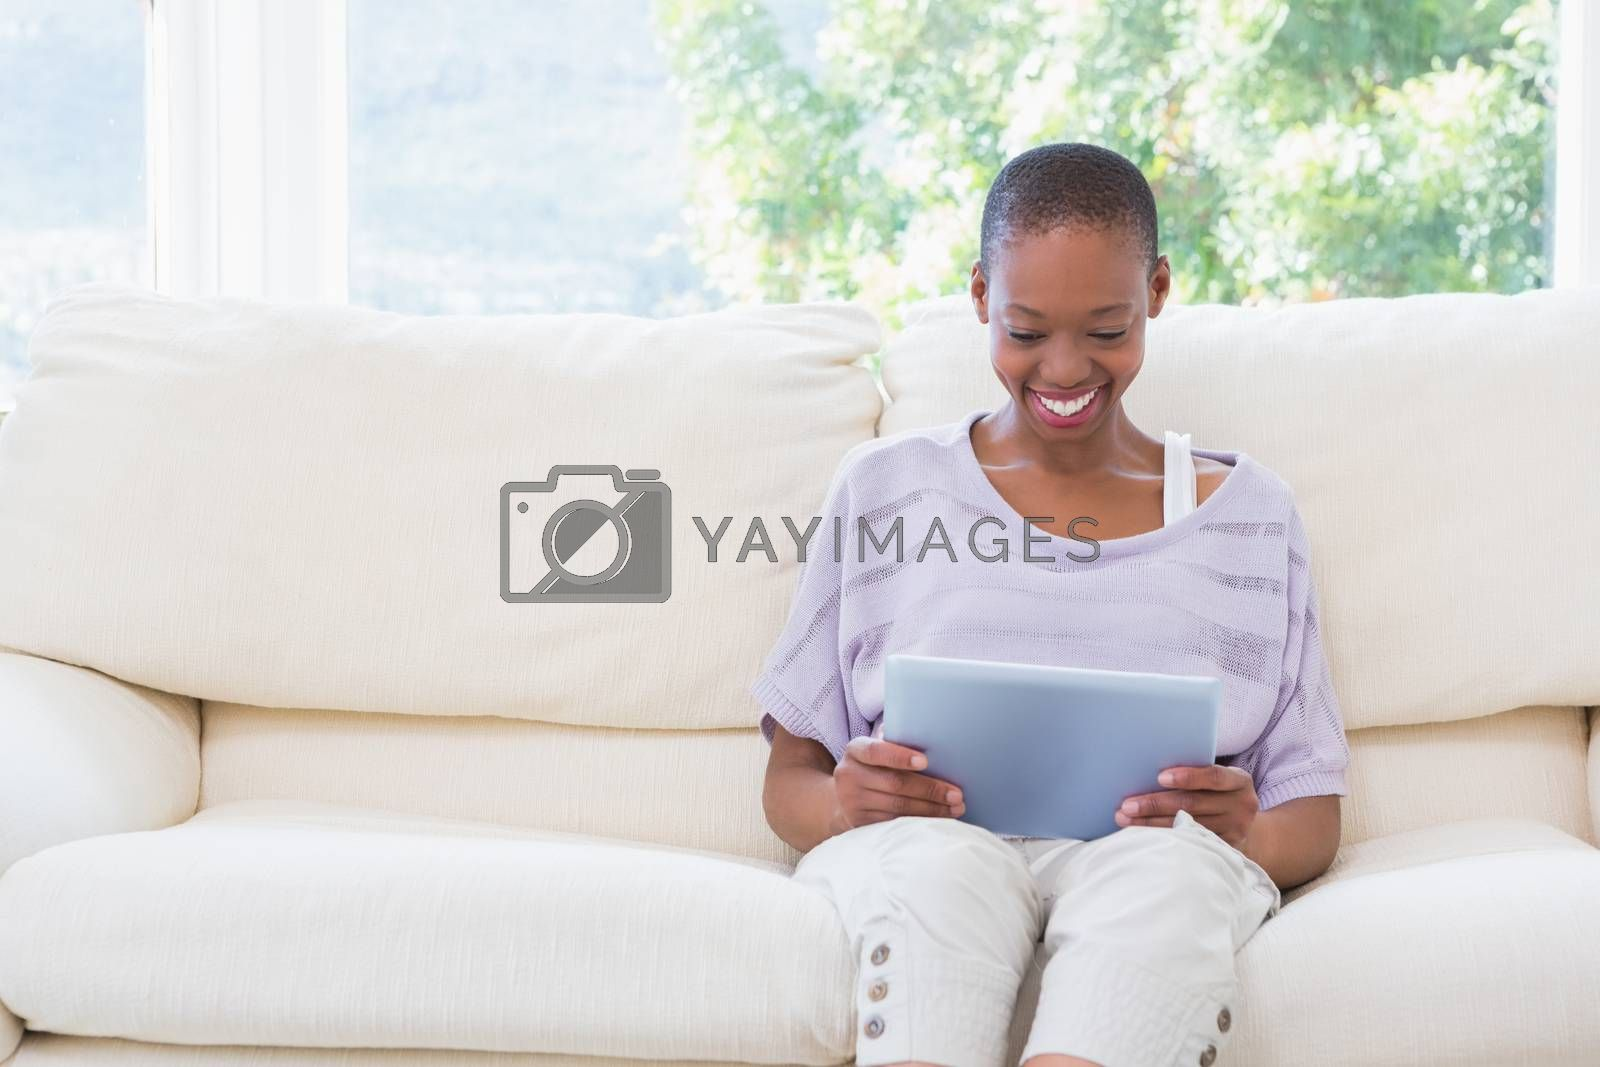 Royalty free image of Happy smiling woman using digital tablet on couch  by Wavebreakmedia